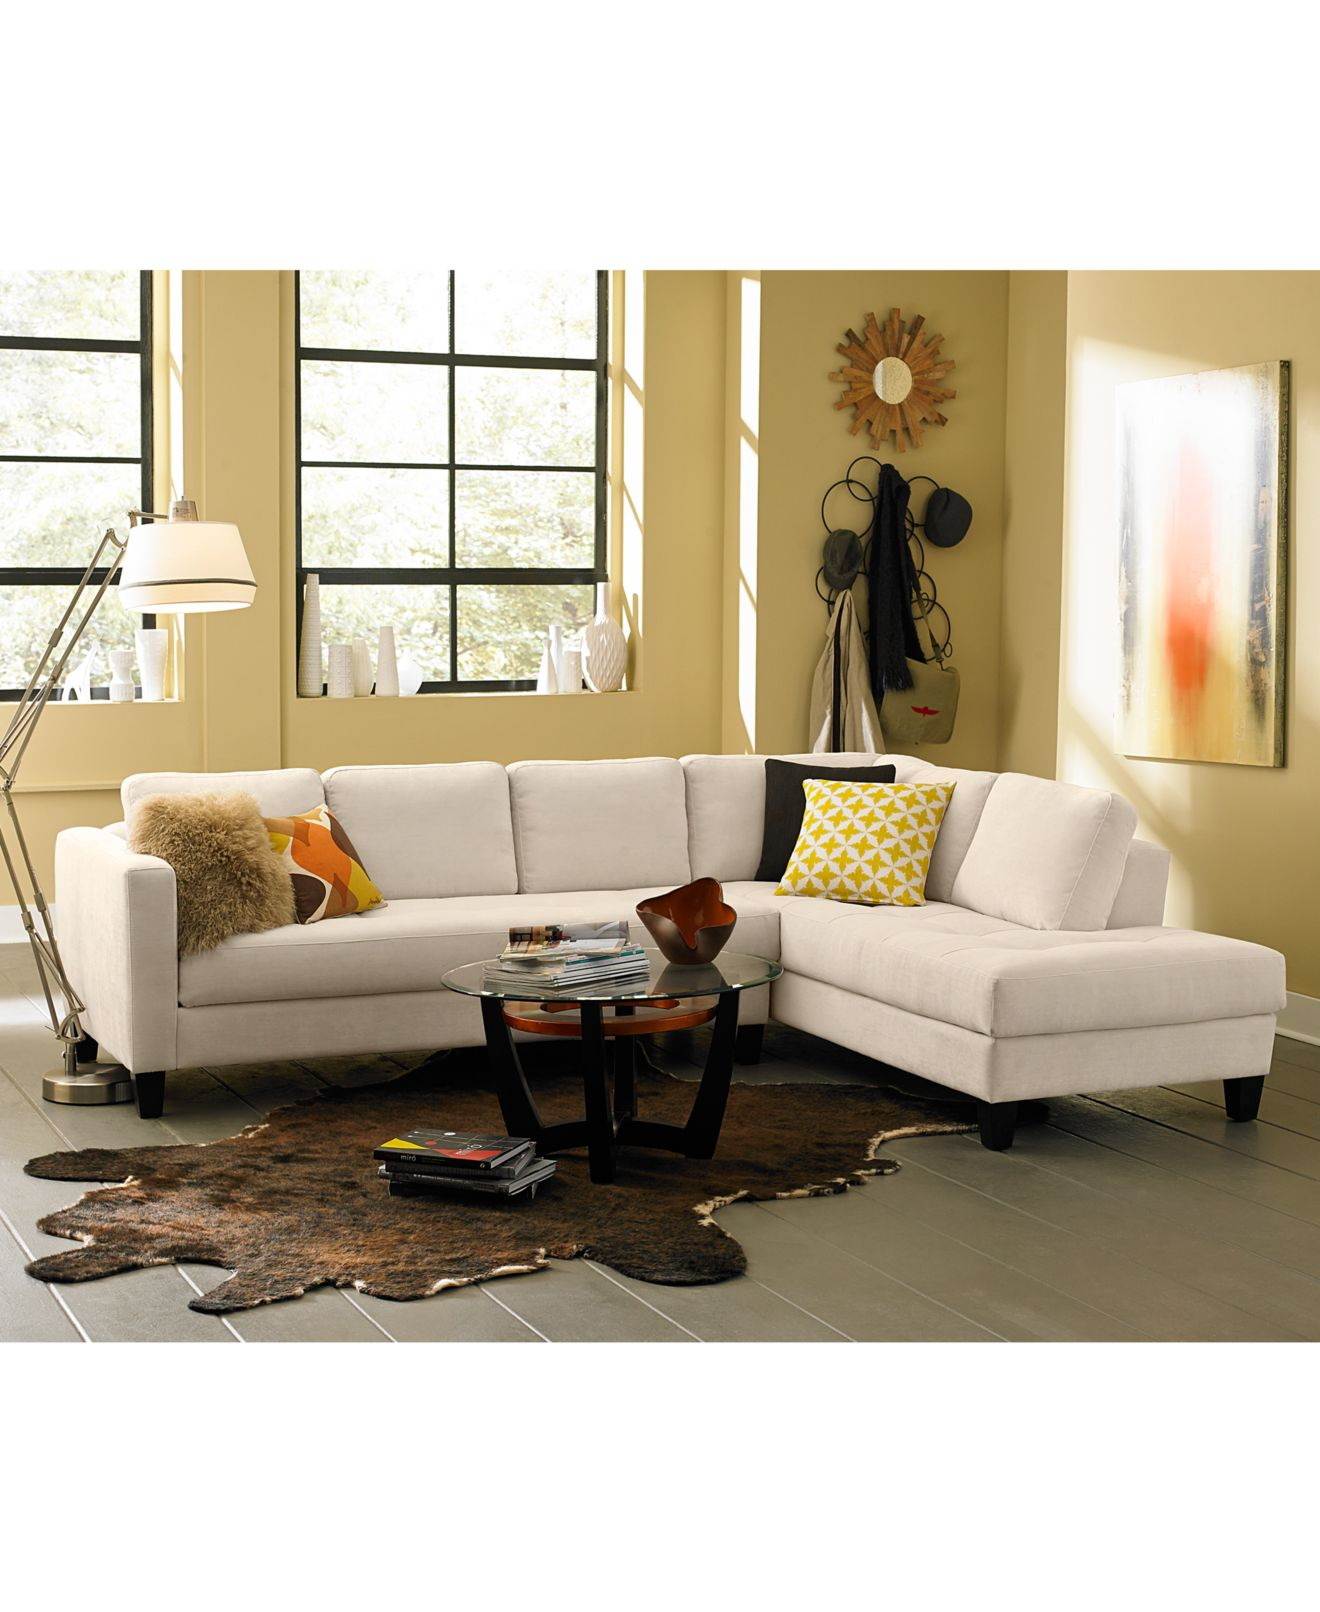 living room collections living room furniture sets - macy's